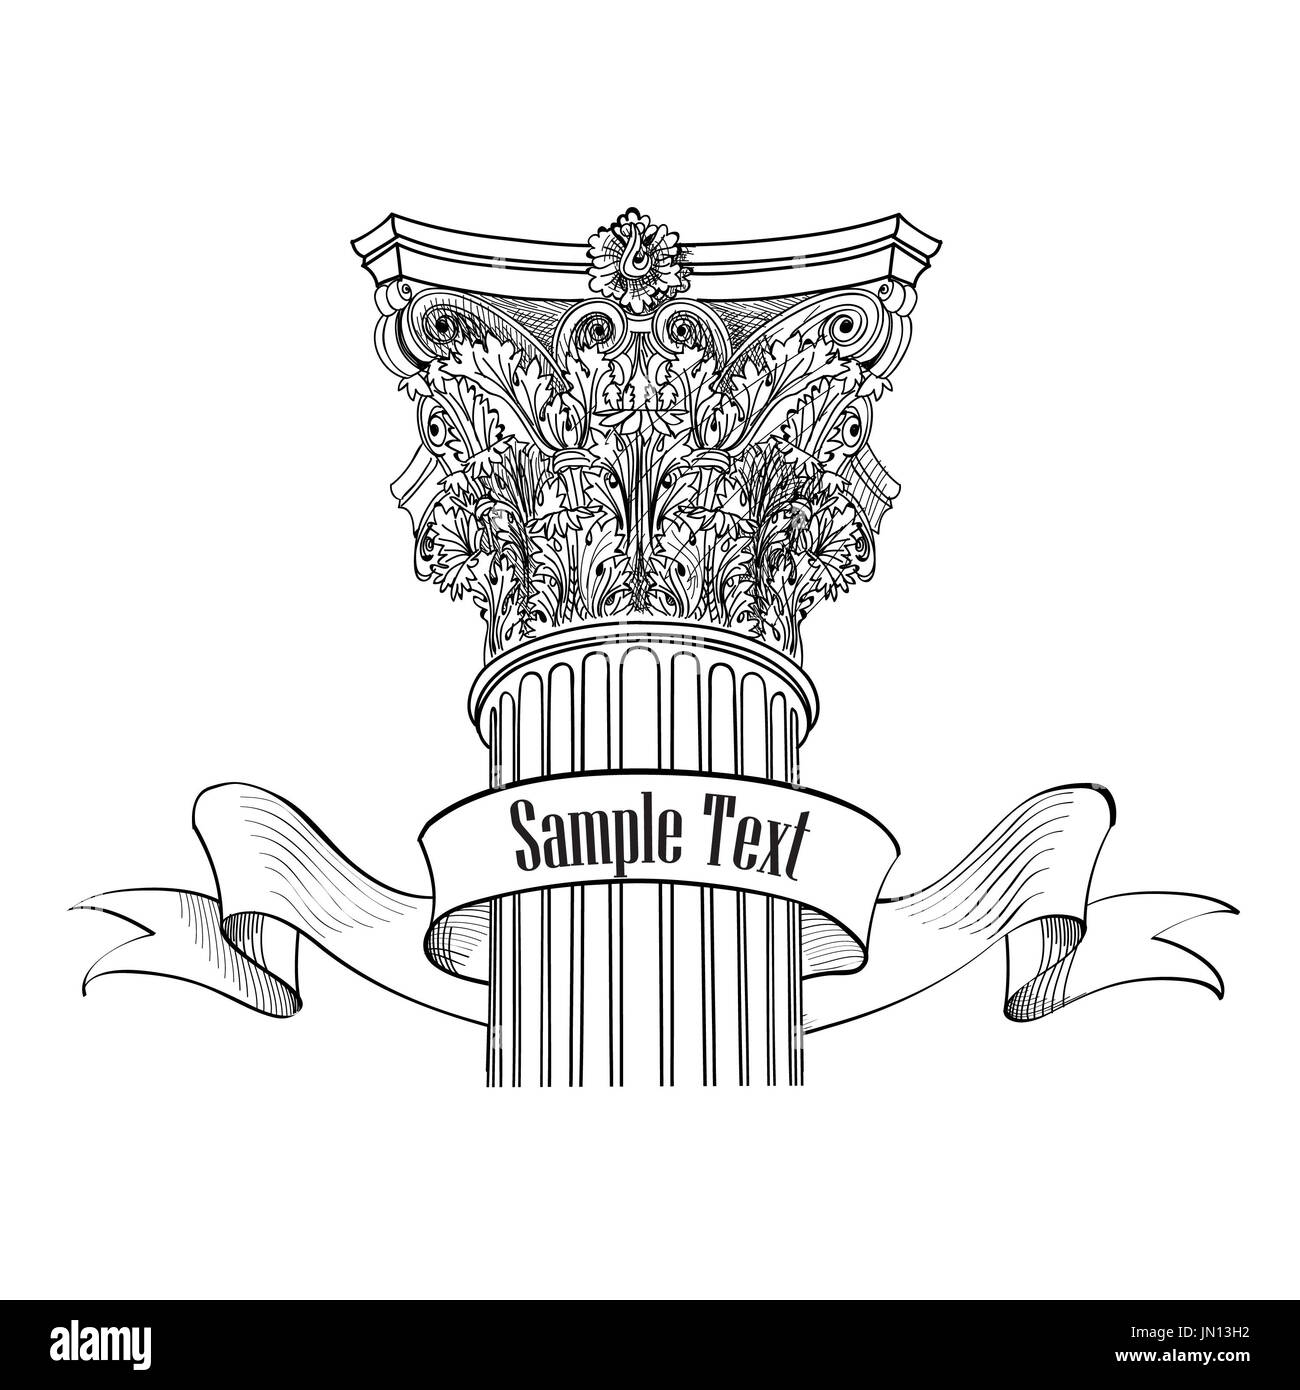 iosolated Roman sign column design column Arhitectural Arch label style Classic sketch wXqP66